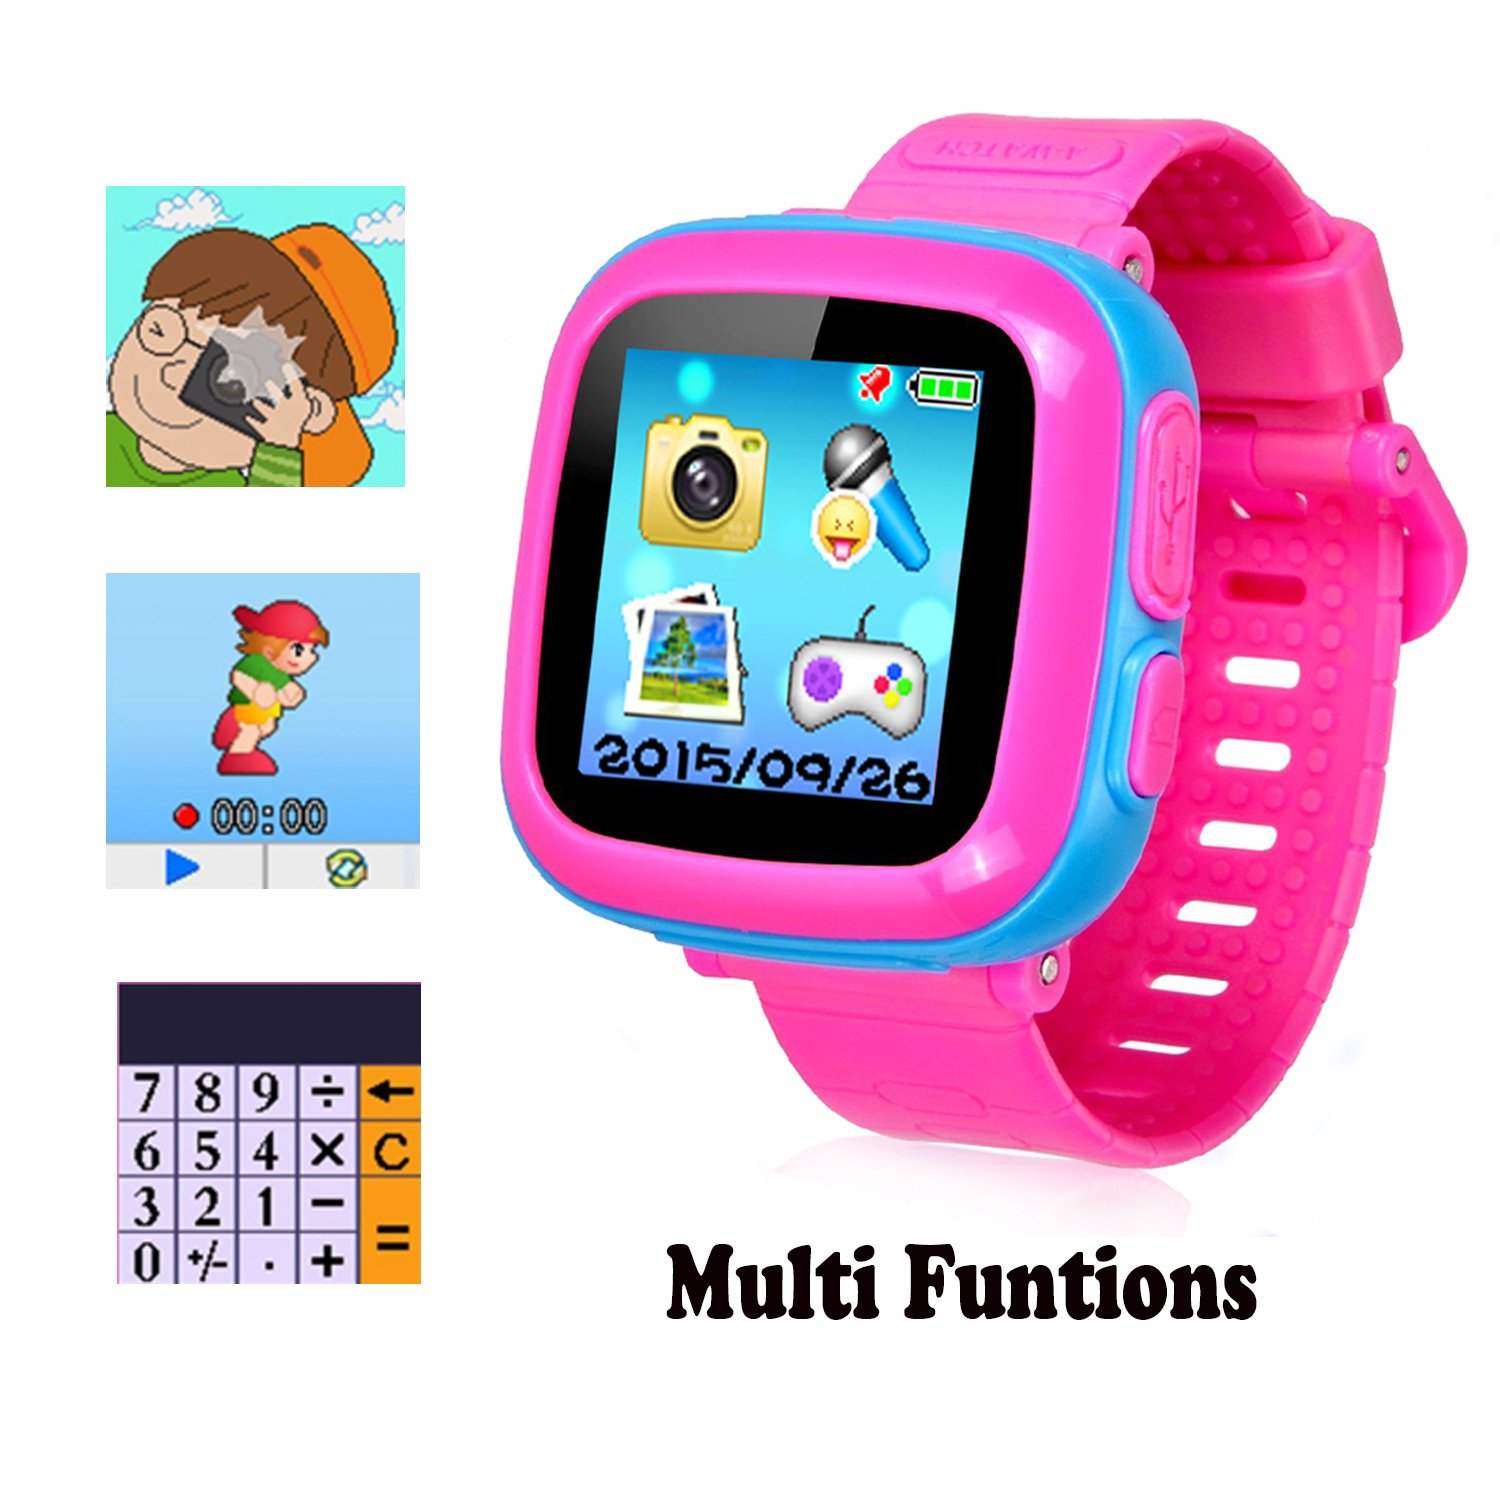 Smart Watch for Kids Girls Boys,Smart Game Watch with Camera Touch Screen Pedometer,Kids Smart Watch Perfect Holiday Birthday Toys Gifts (Joint Blue) by MIMLI (Image #2)